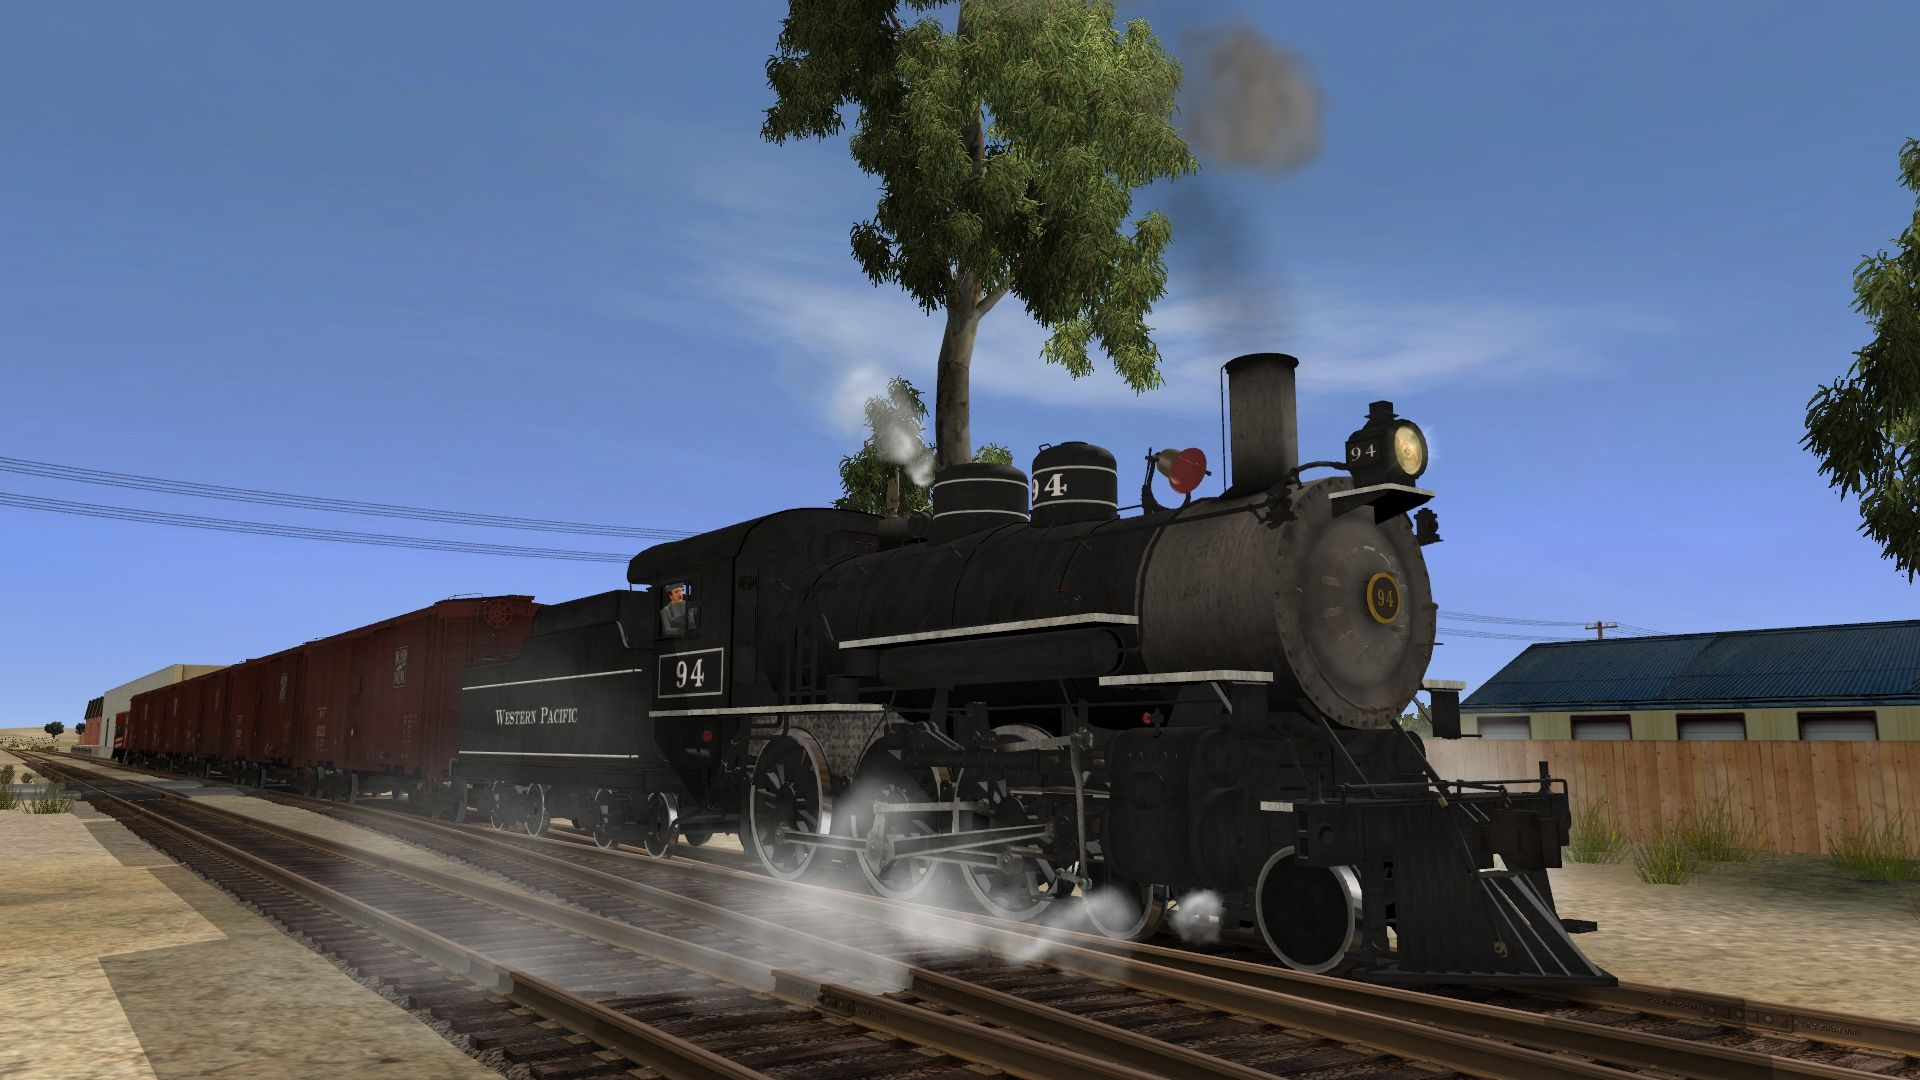 K&L Trainz - Western Pacific TP-29 4-6-0 NOW AVAILABLE! | Trains